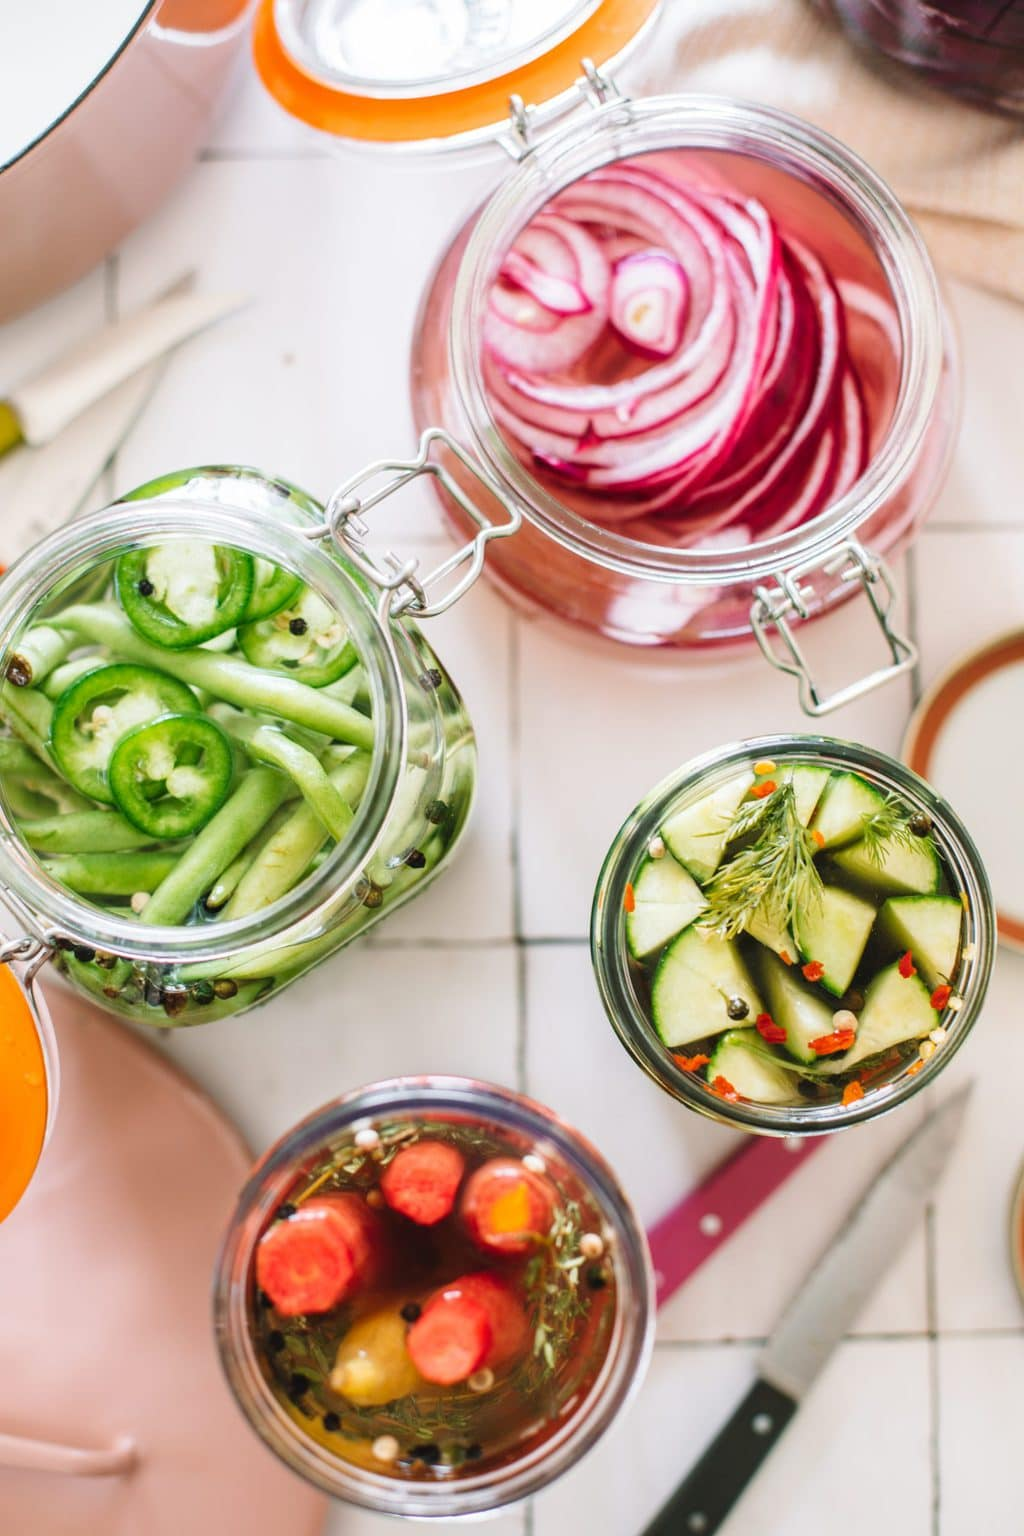 pickled green beans, red onions, carrots and cucumbers in open glass jars